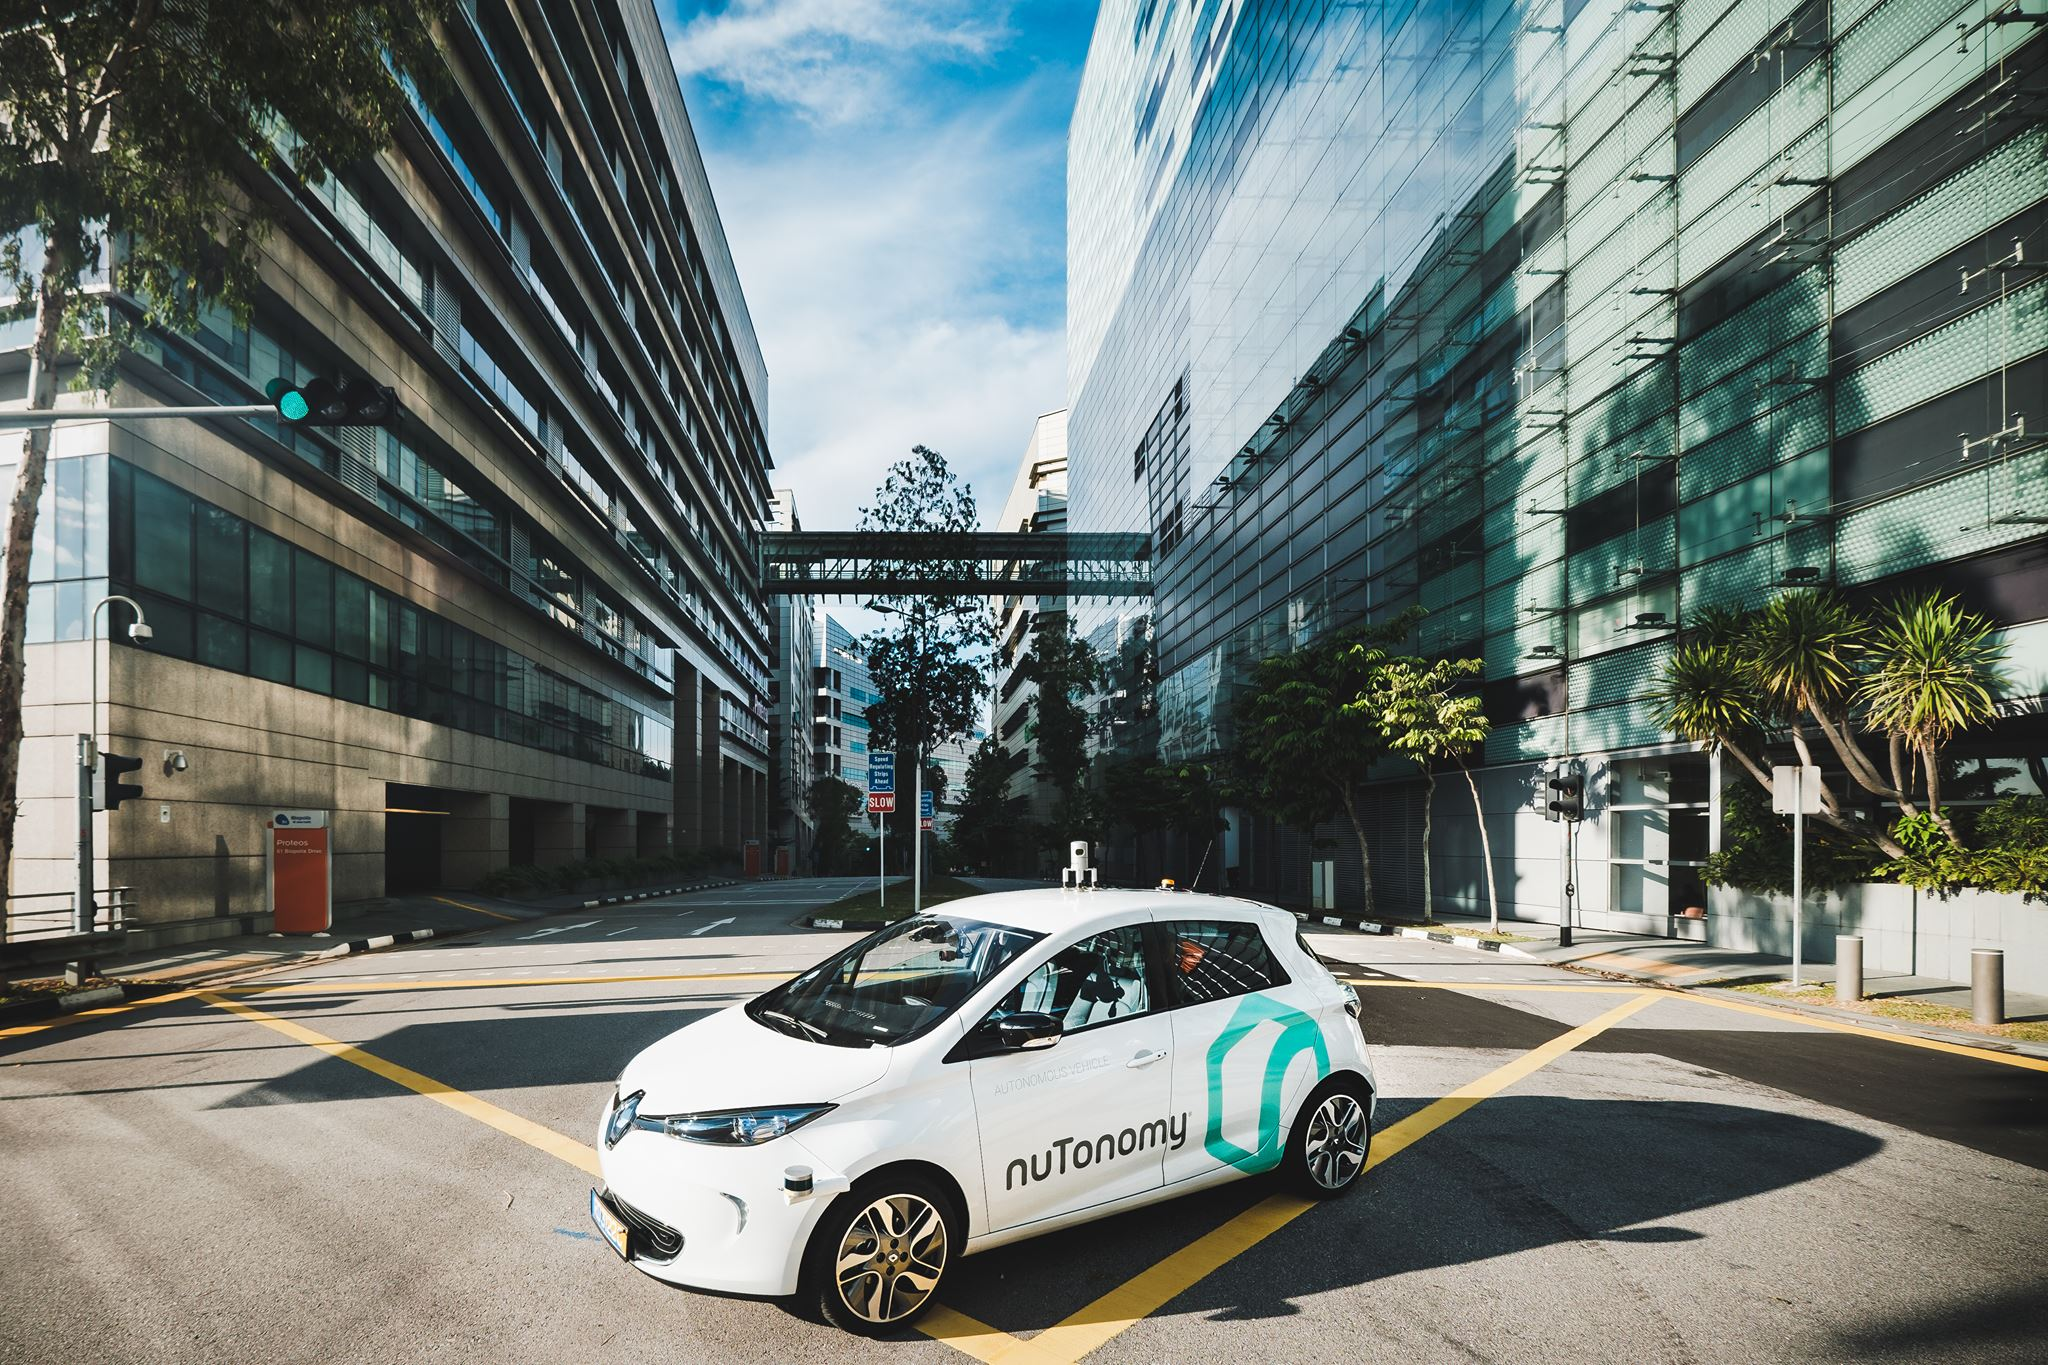 NuTonomy, a spinoff from the Massachusetts Institute of Technology, announced Friday that the public can now book self-driving taxis through an app by Grab, the biggest ride-hailing company in Southeast Asia. (Facebook photo)